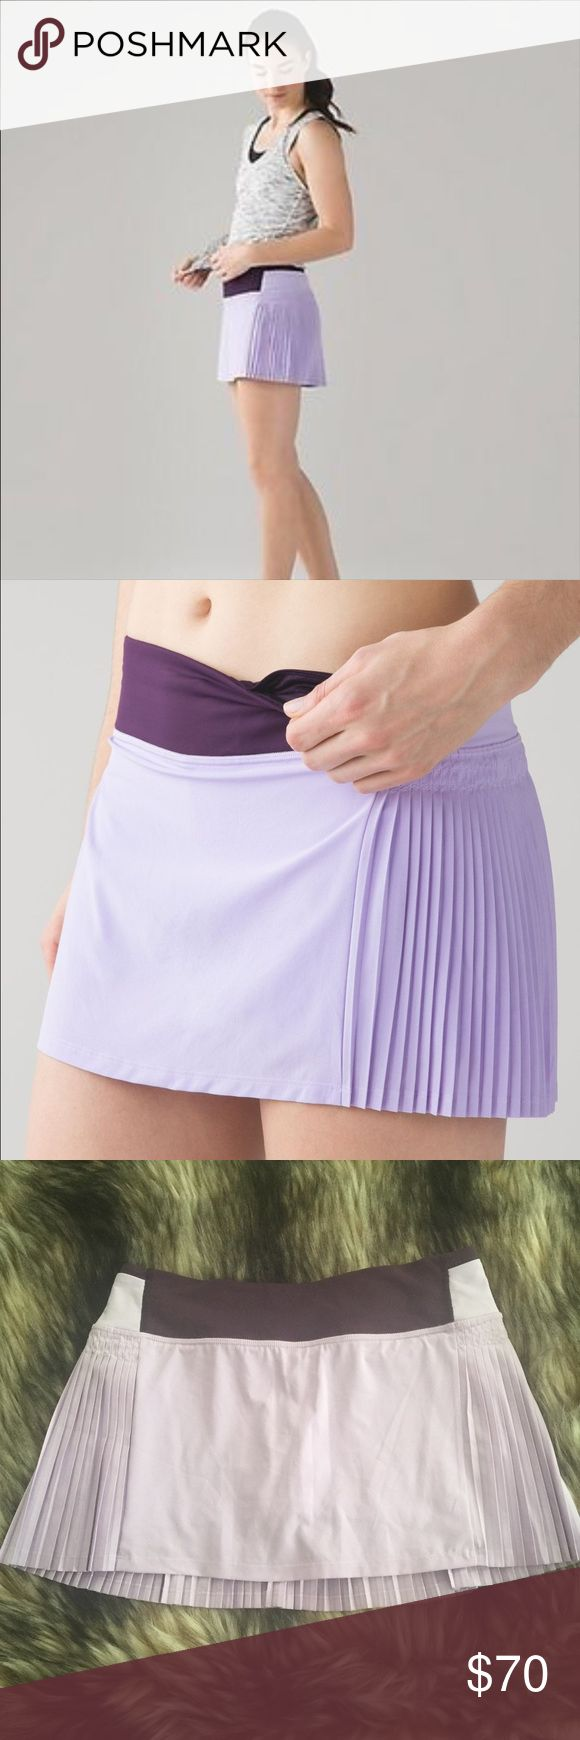 "LULULEMON Time to Shine Pleat Tennis Run Skirt 4 Lululemon Time to Shine pleated skirt/skort in Lilac and Deep Zinfandel. An update to the Pleat to Street skirt. Swift Ultra fabric is sweat-wicking and four-way stretch. Luxtreme fabric liner with added LYCRA fits like a second skin. Low friction performance. Plenty of pockets for your essentials- 2 at waistband and 2 on leg of shorts. 3.5"" inseam on liner. Hugged sensation. Designed for run. Size 4. Mint condition. No trades please 💕…"